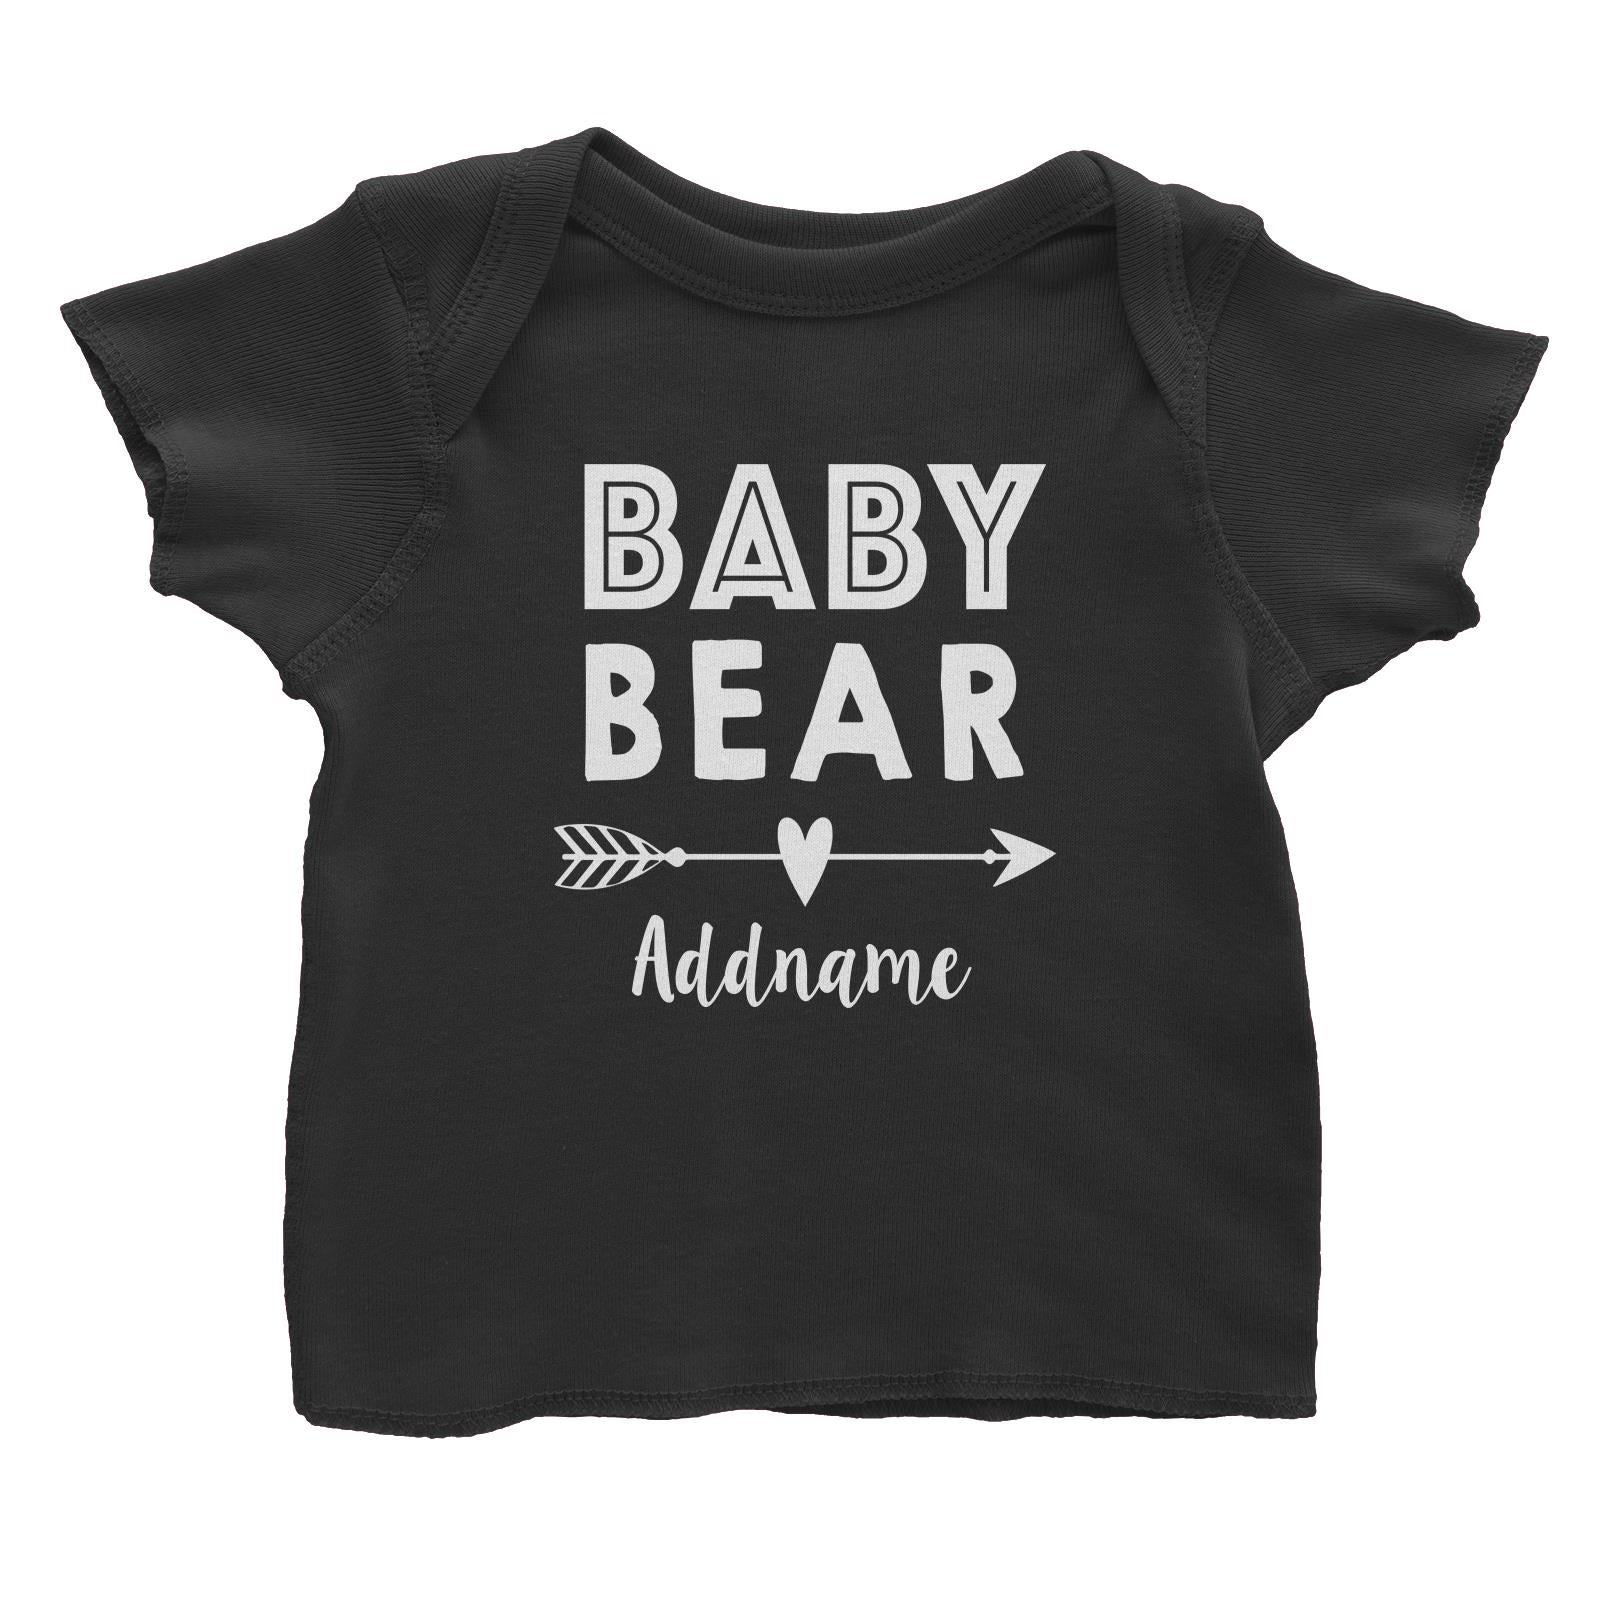 Baby Bear Addname Baby T-Shirt  Matching Family Personalizable Designs